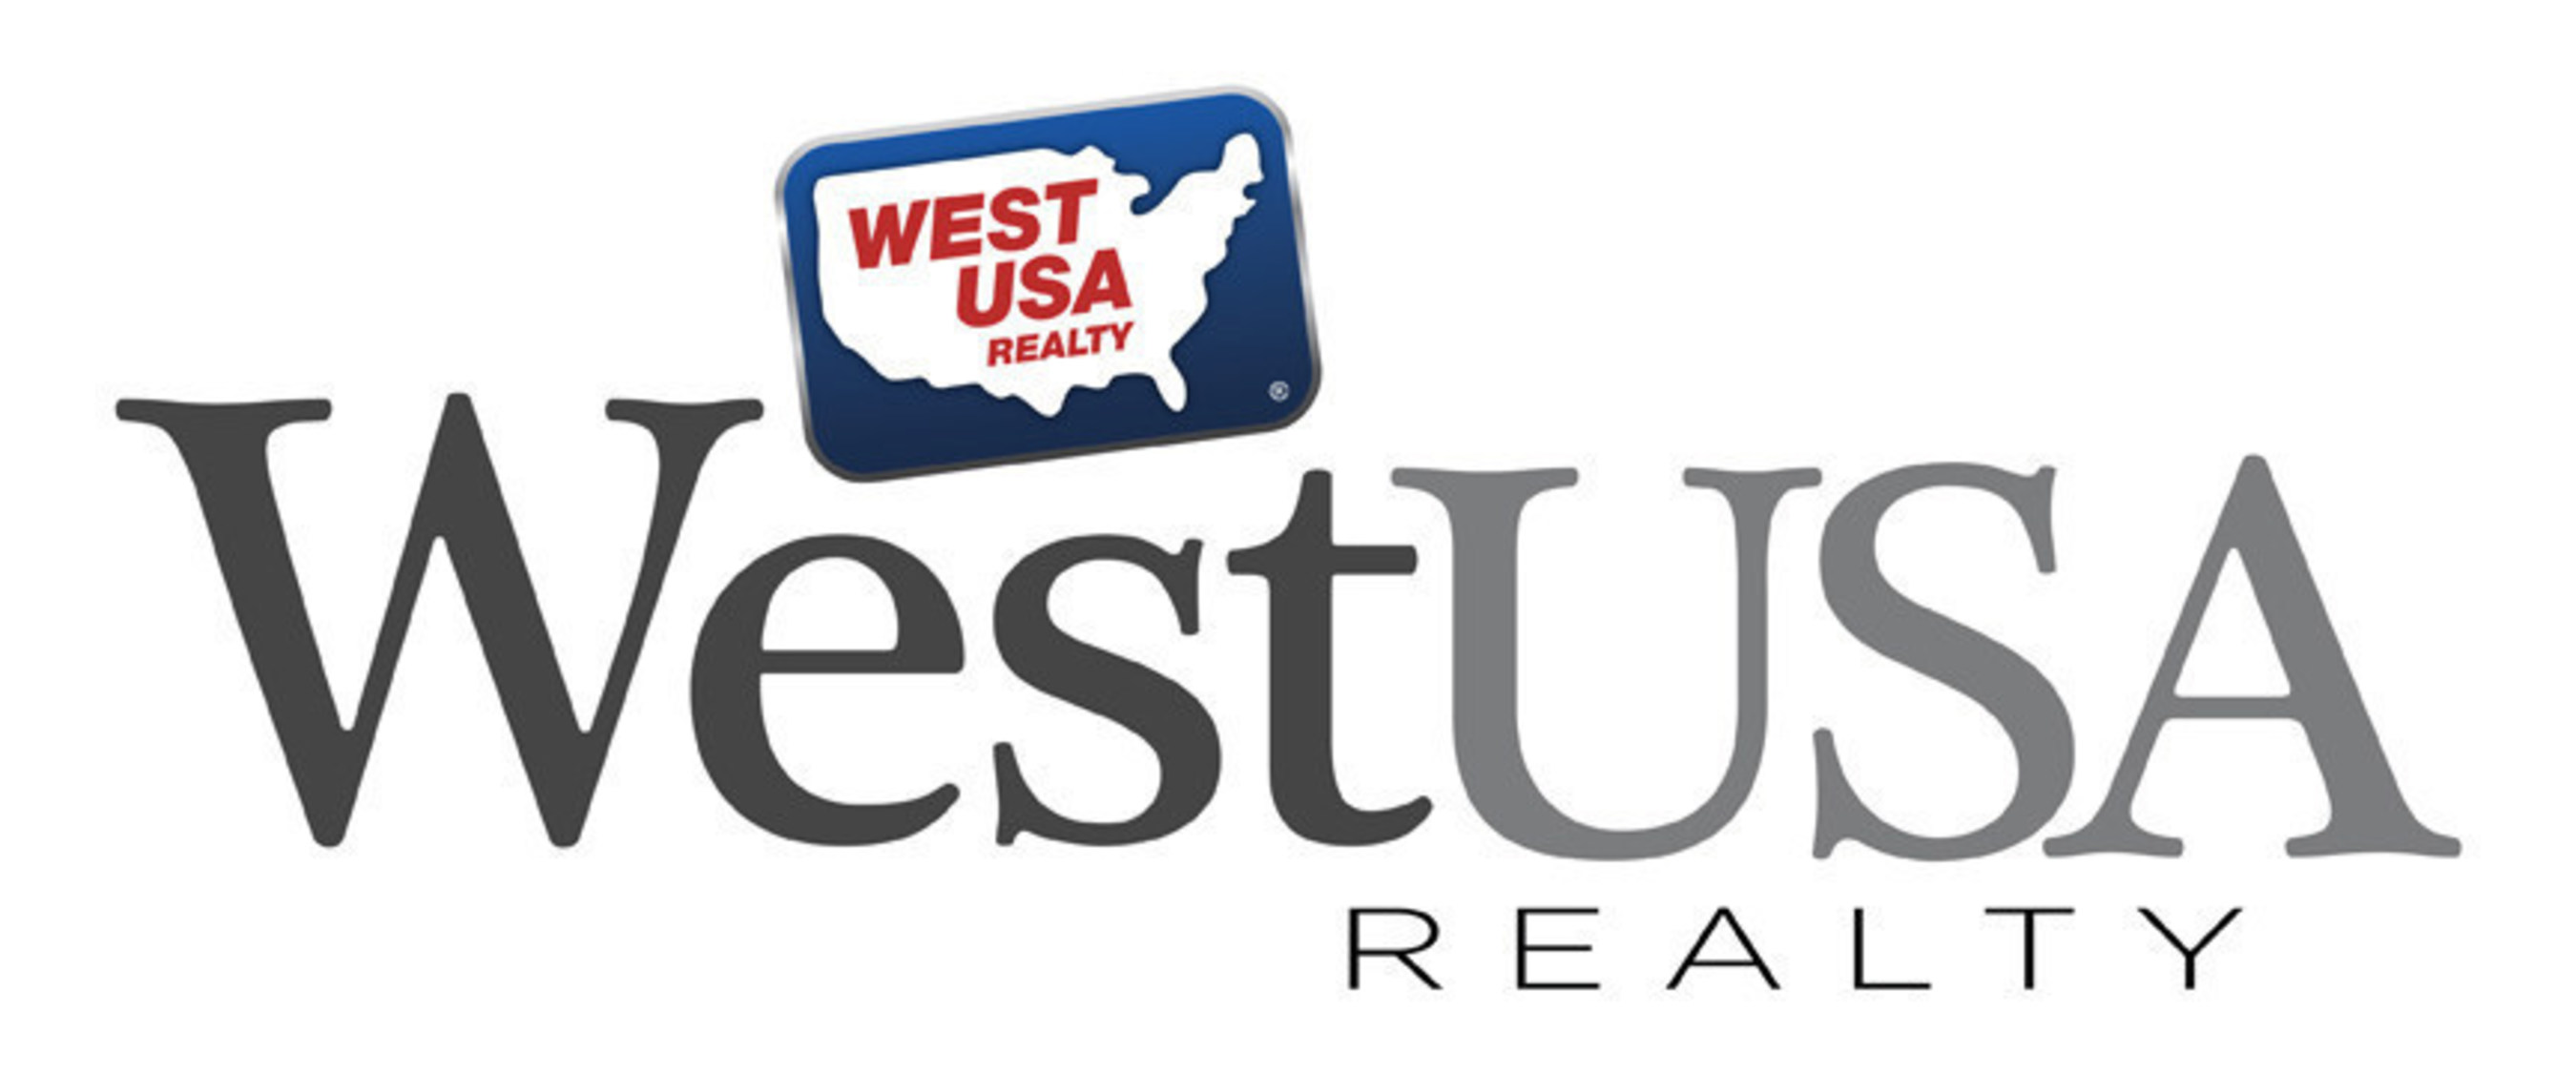 West USA Realty Continues to Hire Top Talent